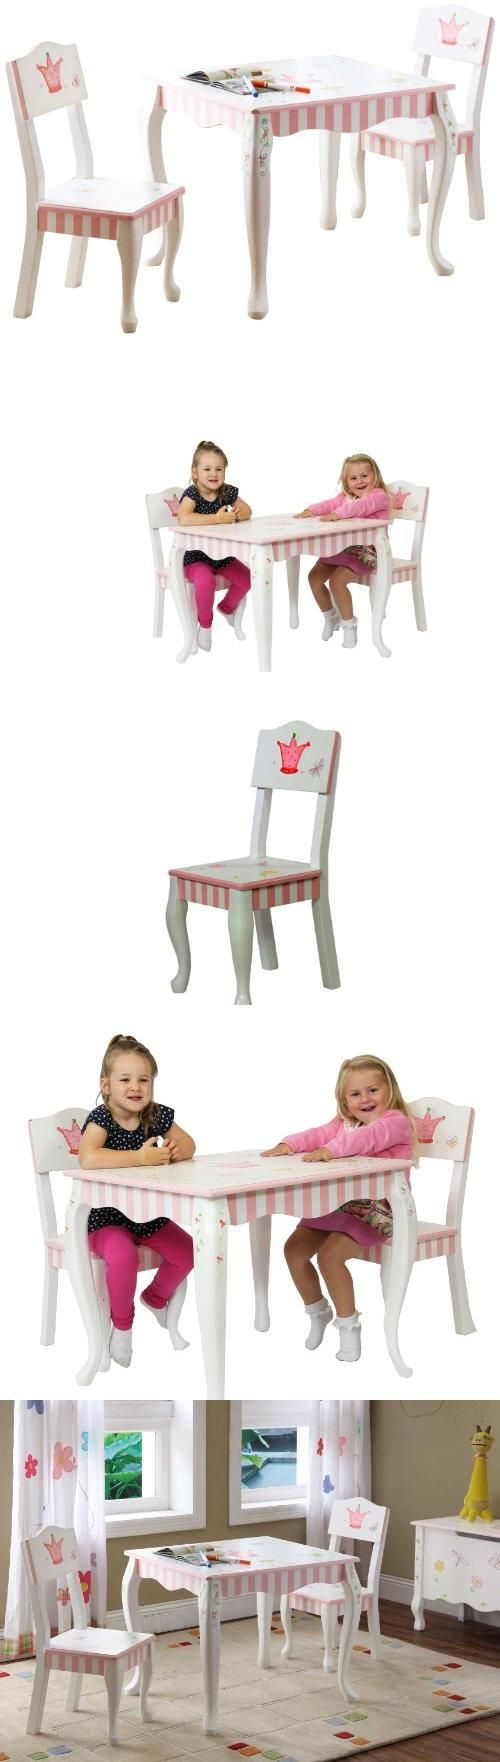 Teamson Kids Girls Table and Chairs Set - Princess & Frog Room Collection Safe, Sturdy & Eco-Friendly Wood with Lead Free Paints - CPSIA Compliant. Carefully Packaged Unique Hand Painted Hand Carved Design by Skilled Craftsman. Suitable for Kids Bedroom and Playroom to develop Imagination and Creativity with Whimsical Pieces. Easy Assembly; Best Gift for Kids Birthday; Christmas Gift; Baby Shower ... #Teamson_Design_Corp #Toy